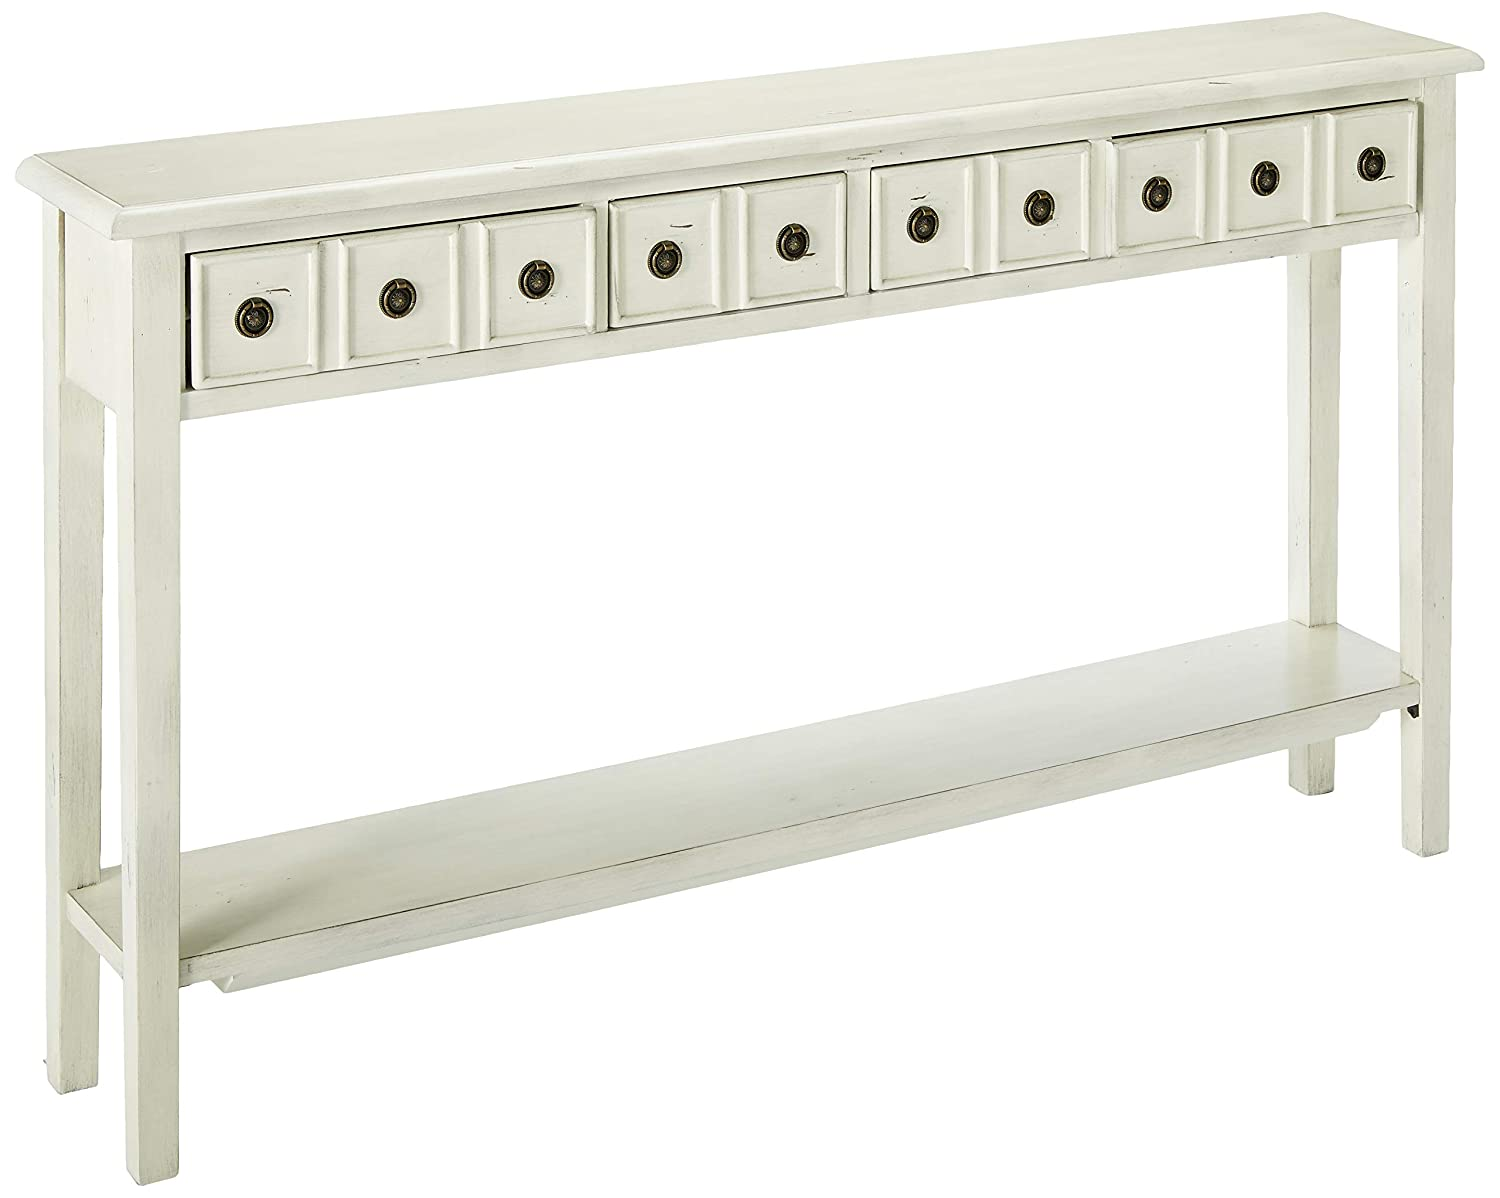 Powell's Furniture 16A8213C Sadie Cream Long Storage Console Table, Multicolor